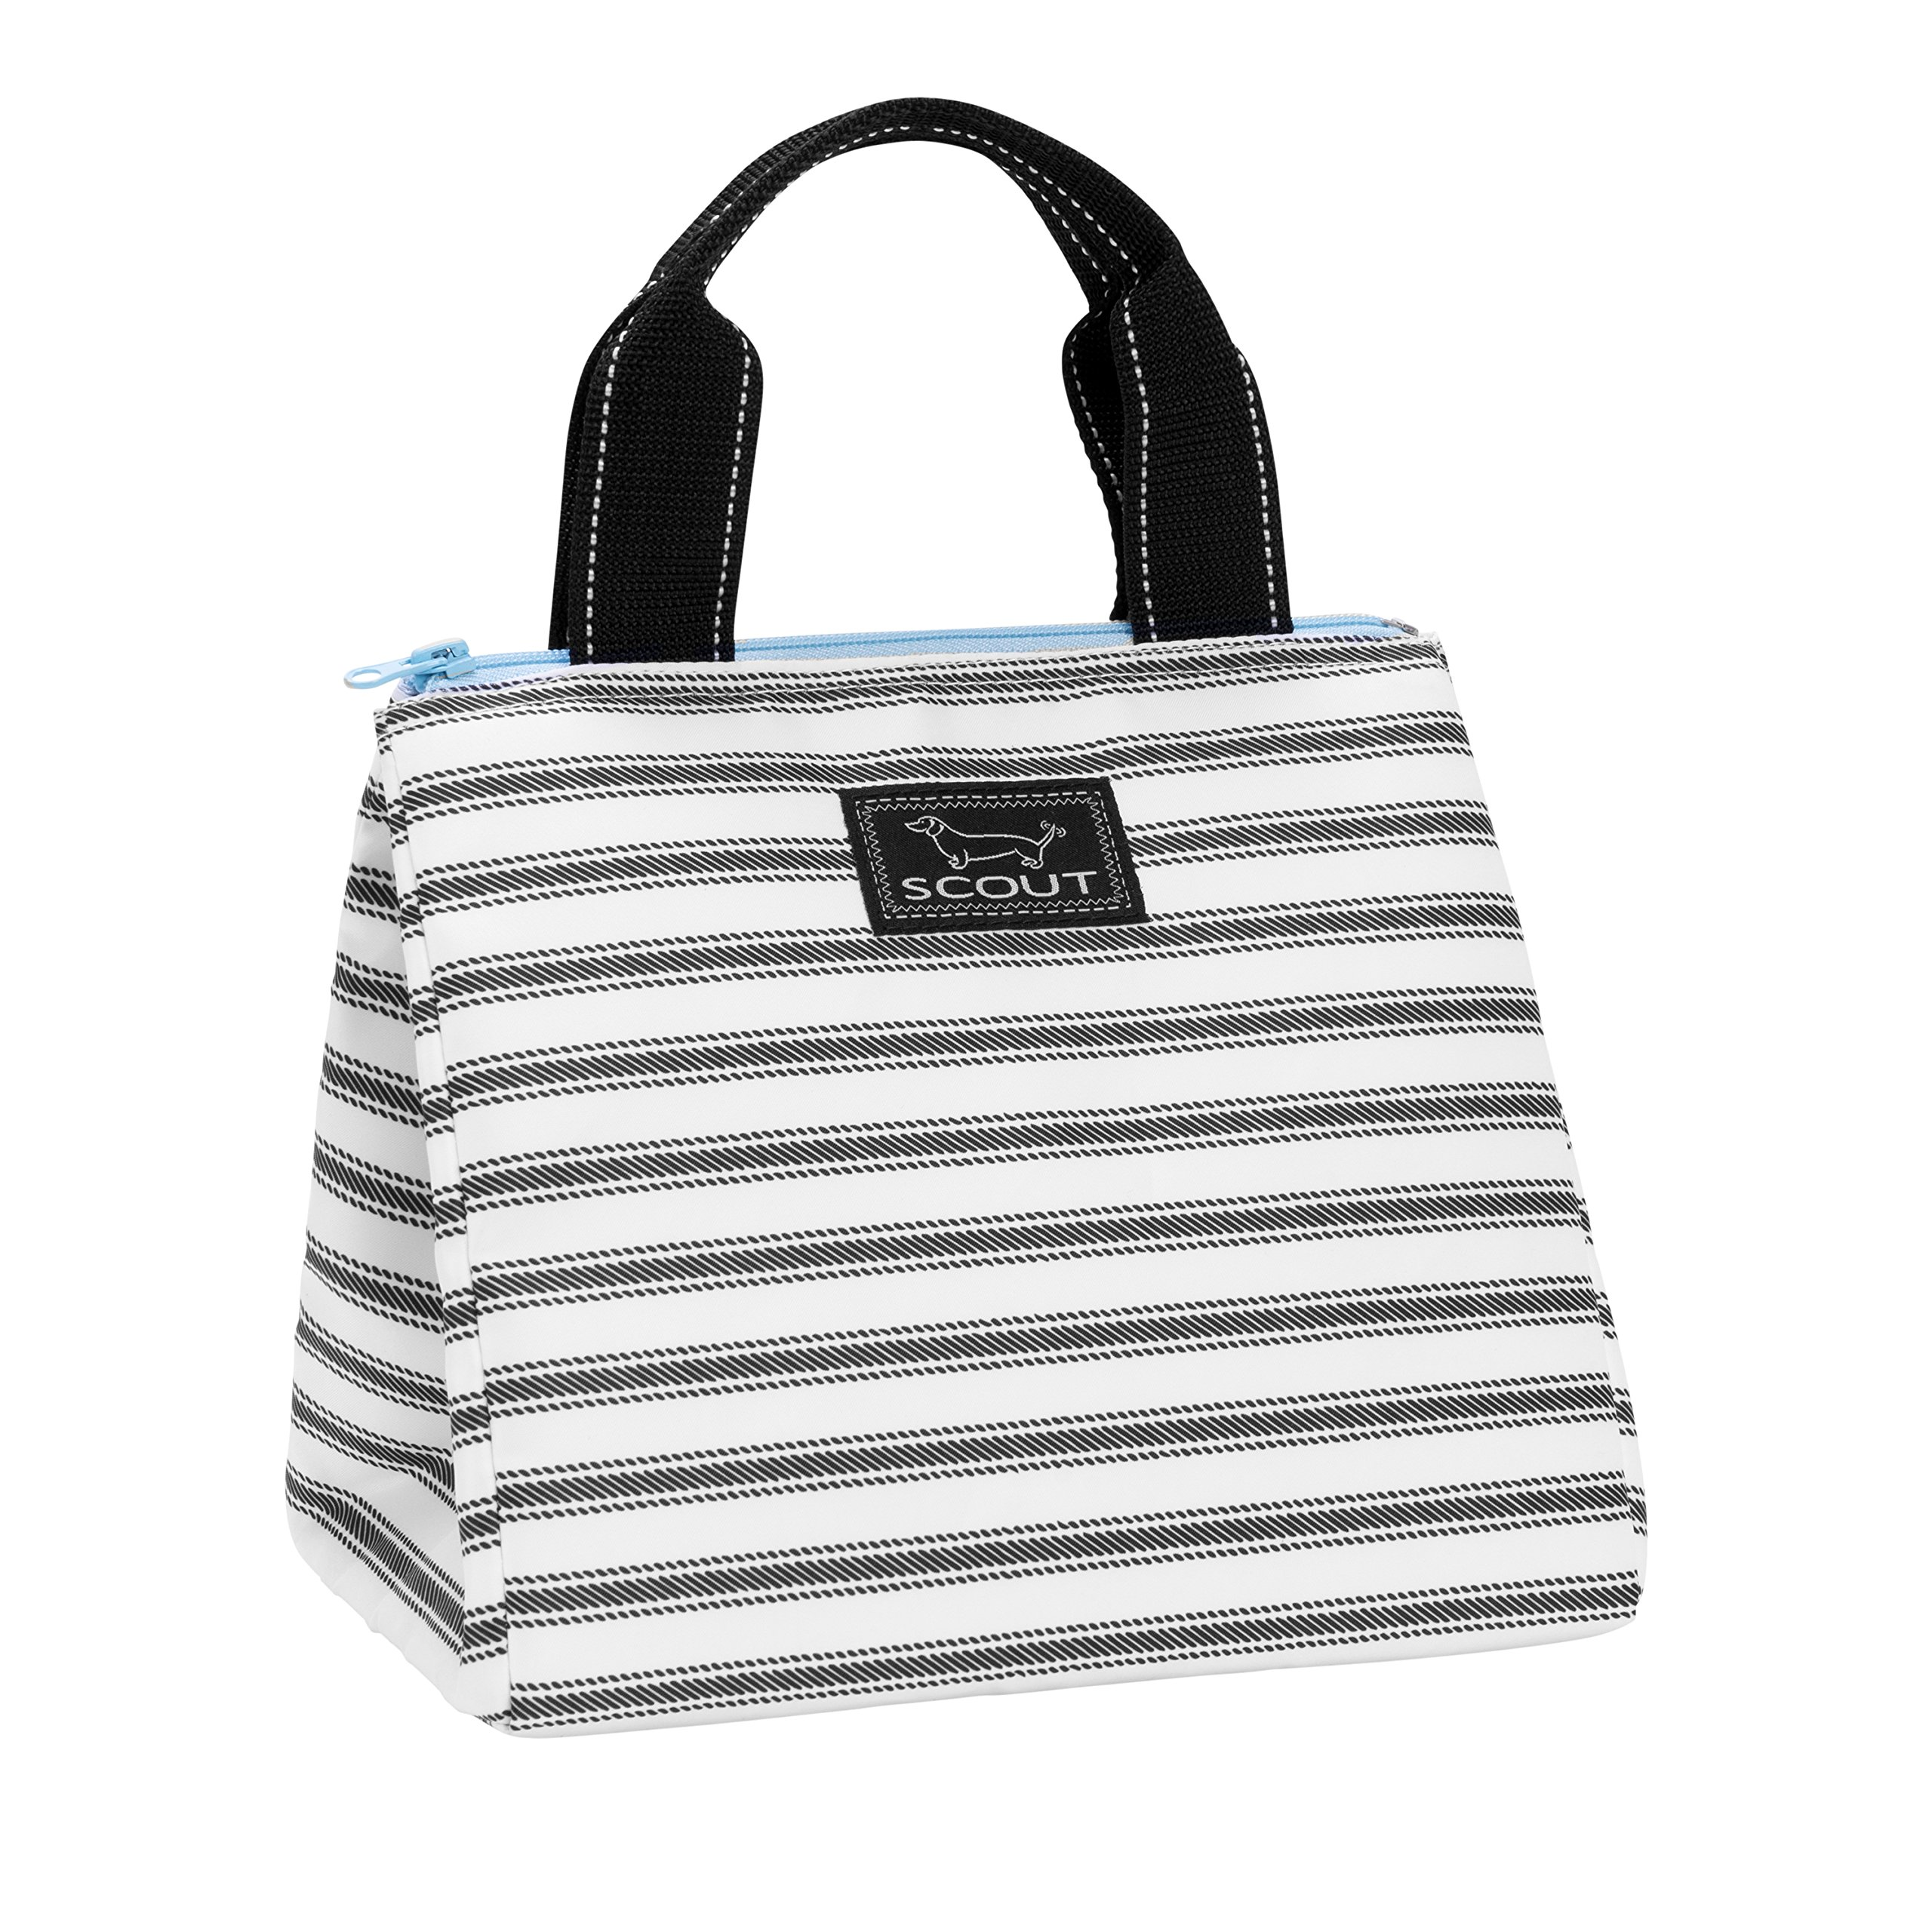 SCOUT Eloise Insulated Lunch Box, Soft-sided Handbag Inspired Design, Heat-sealed, PVC-free Liner, Water Resistant, Zips Closed, College Ruled